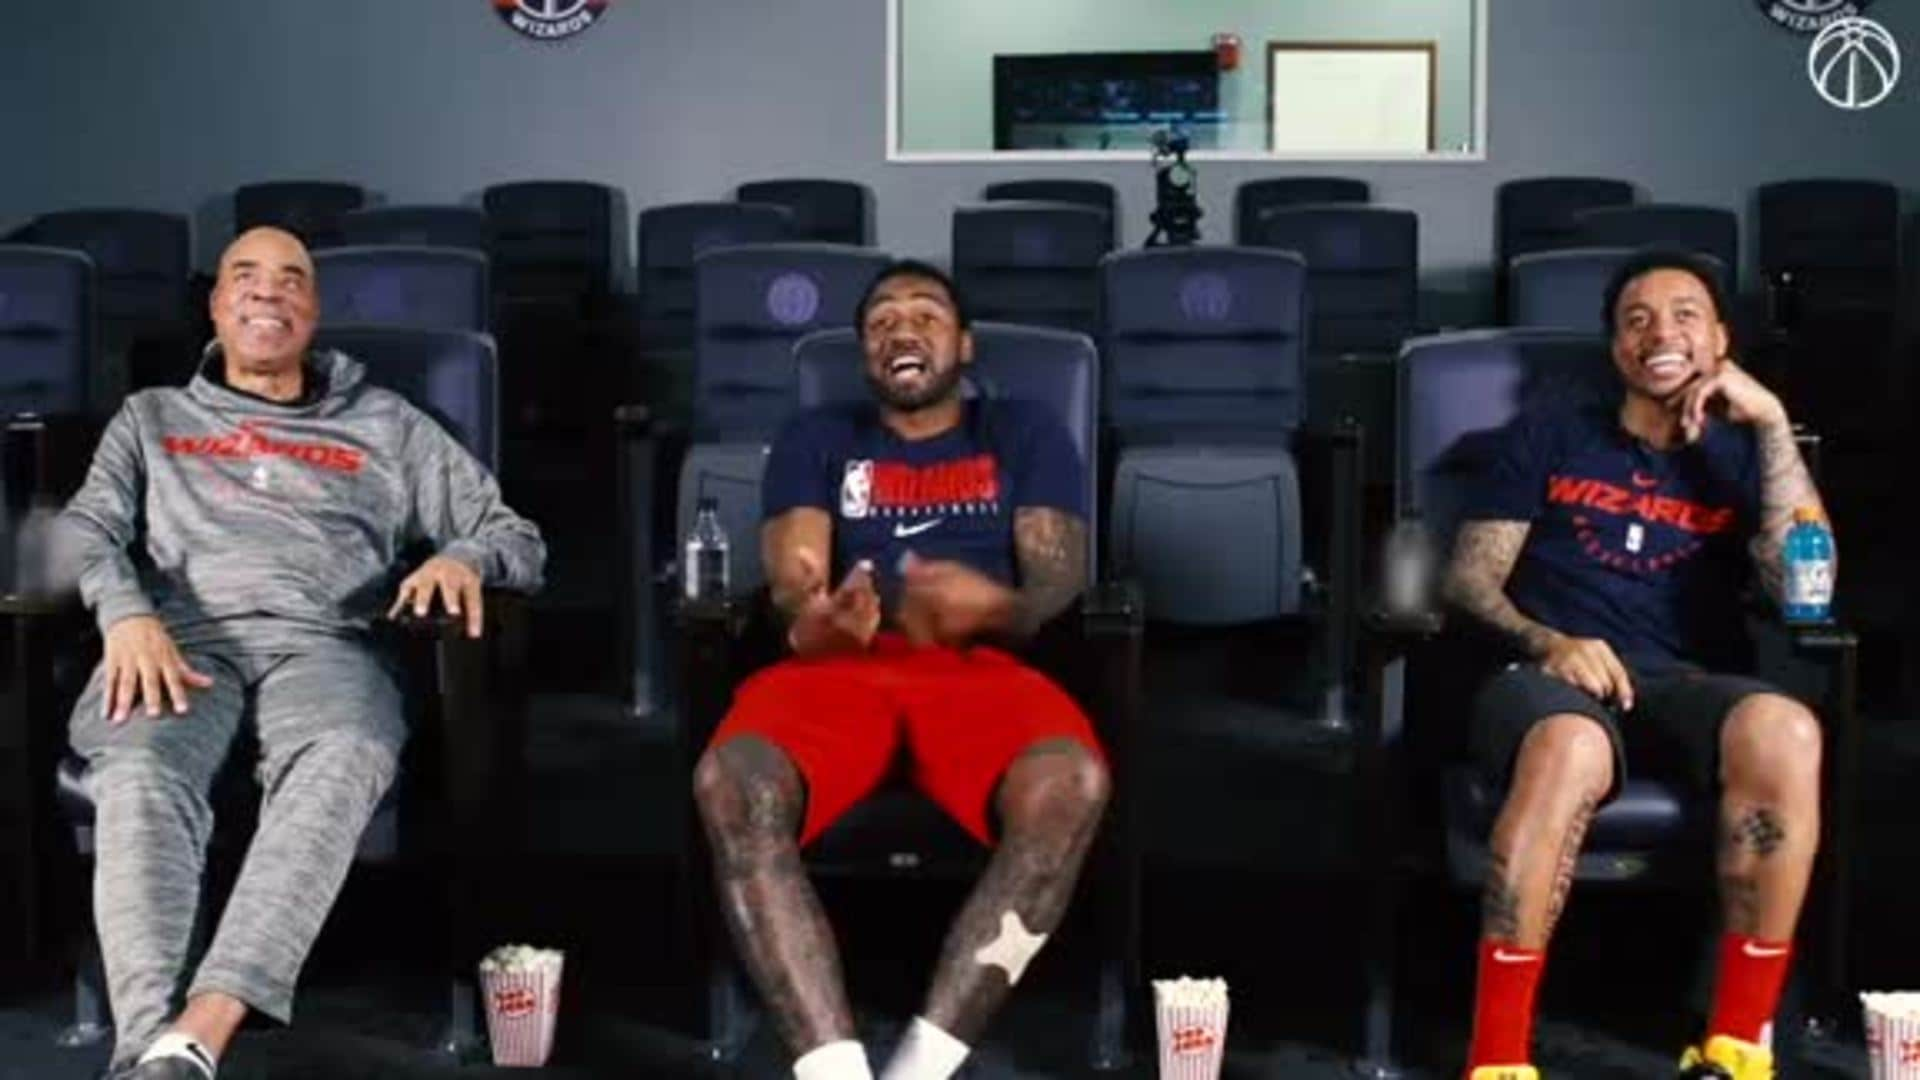 The Playback: John Wall and Isaiah Thomas break down 2017 #WizCeltics playoff series